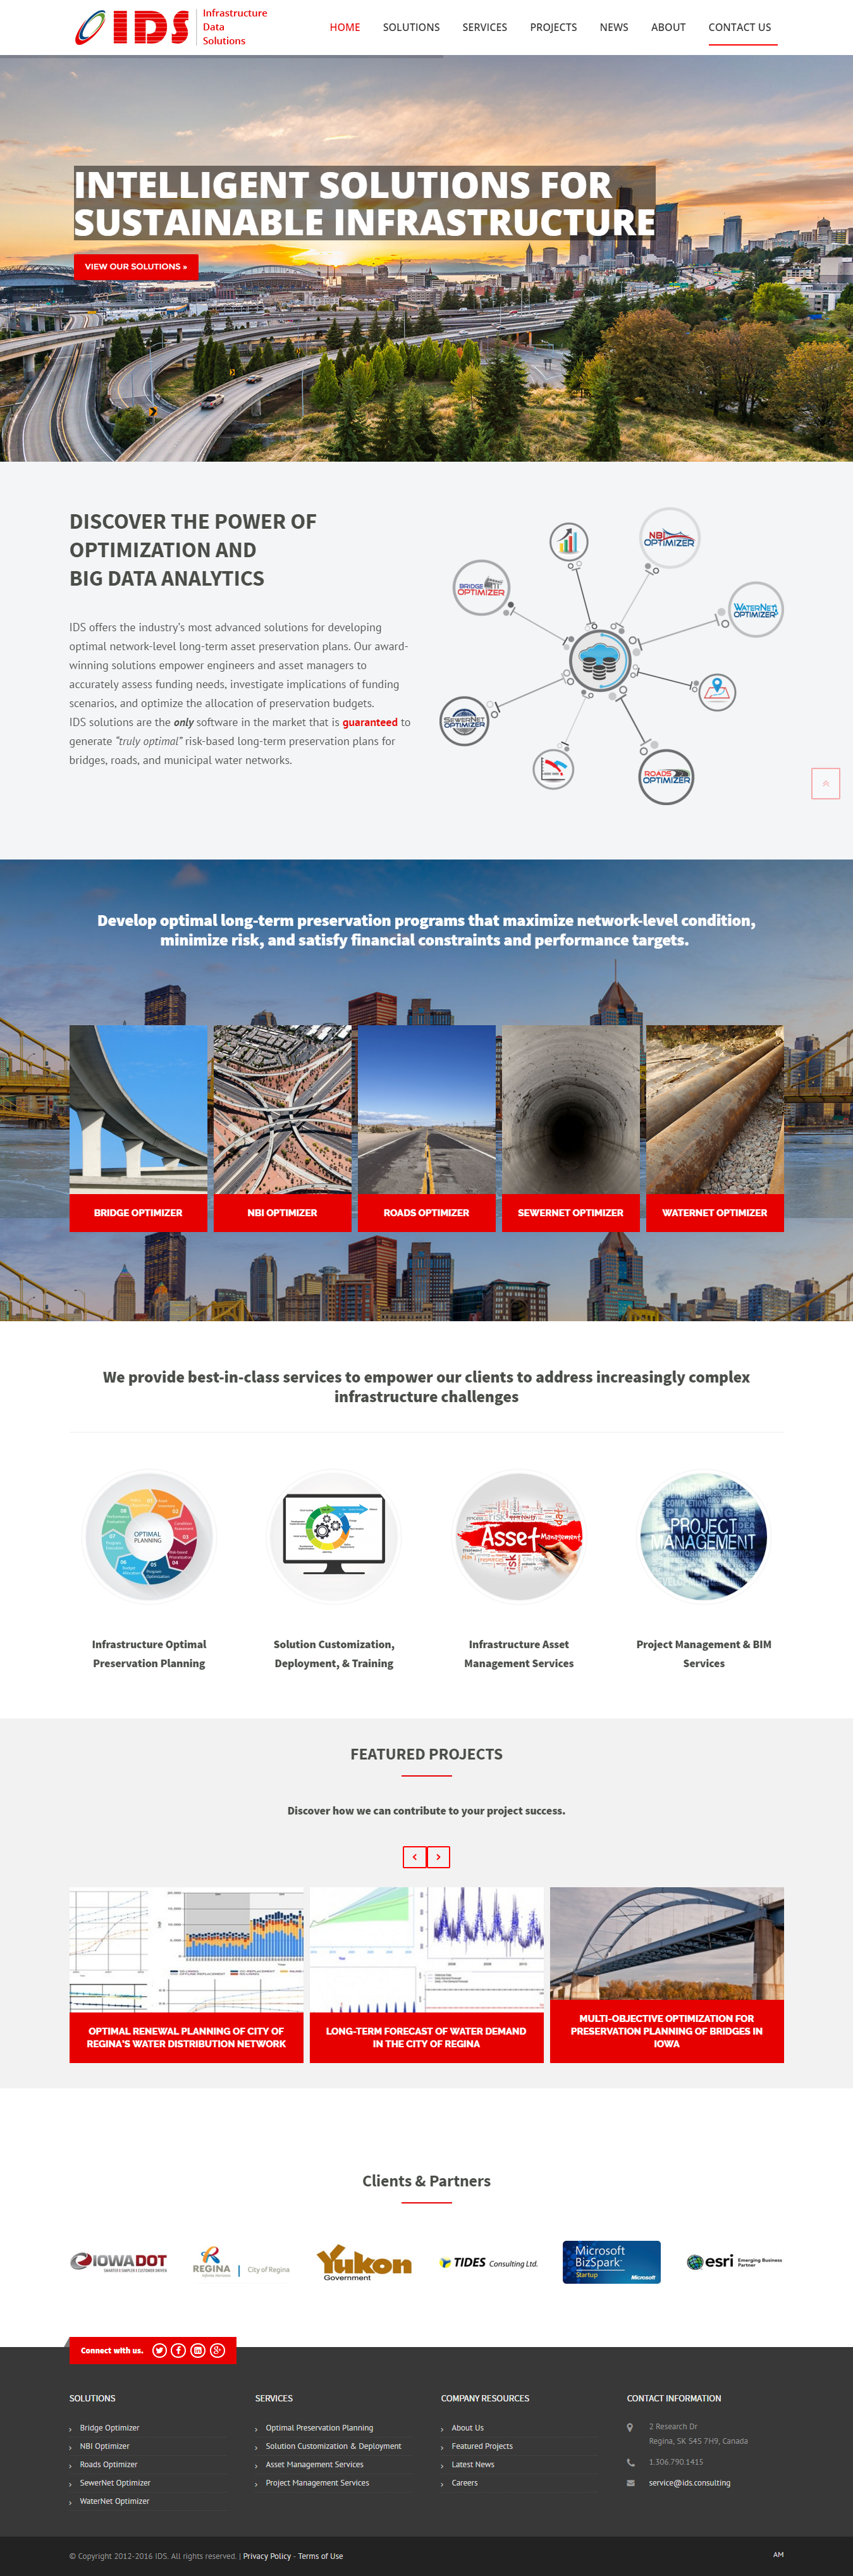 IDS Inc website design